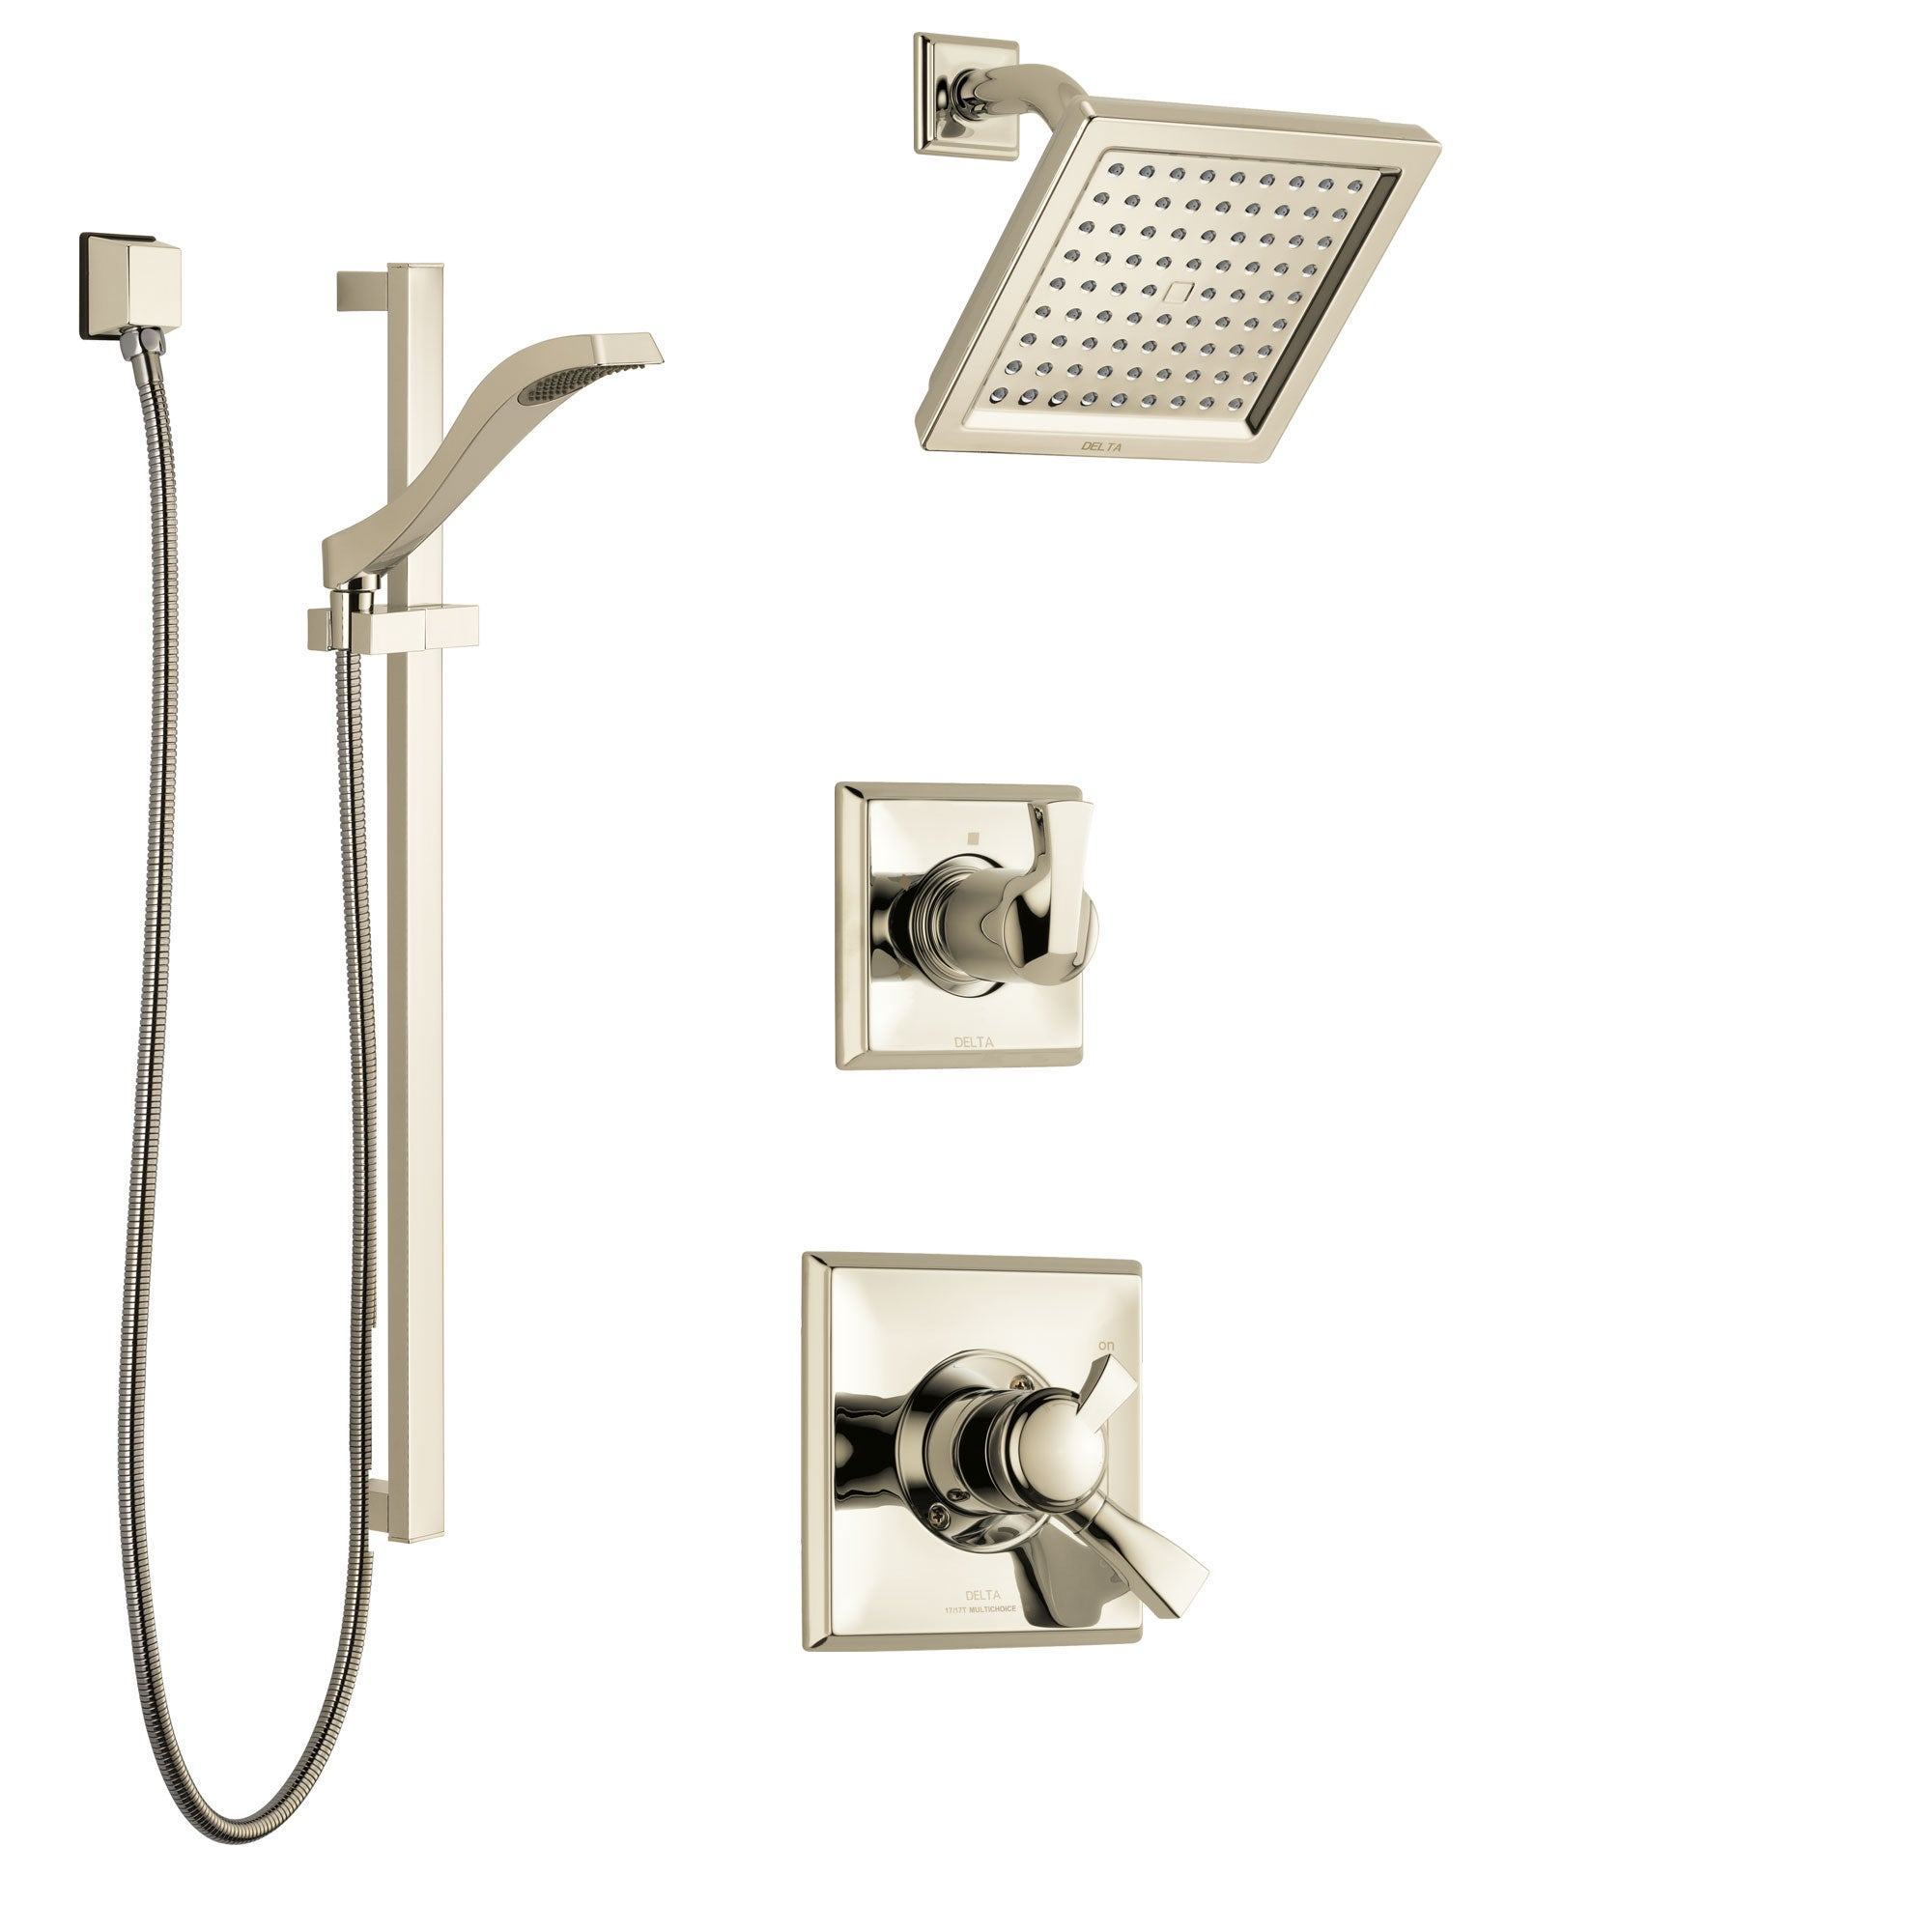 Delta Dryden Polished Nickel Finish Shower System with Dual Control Handle, 3-Setting Diverter, Showerhead, and Hand Shower with Slidebar SS172511PN2